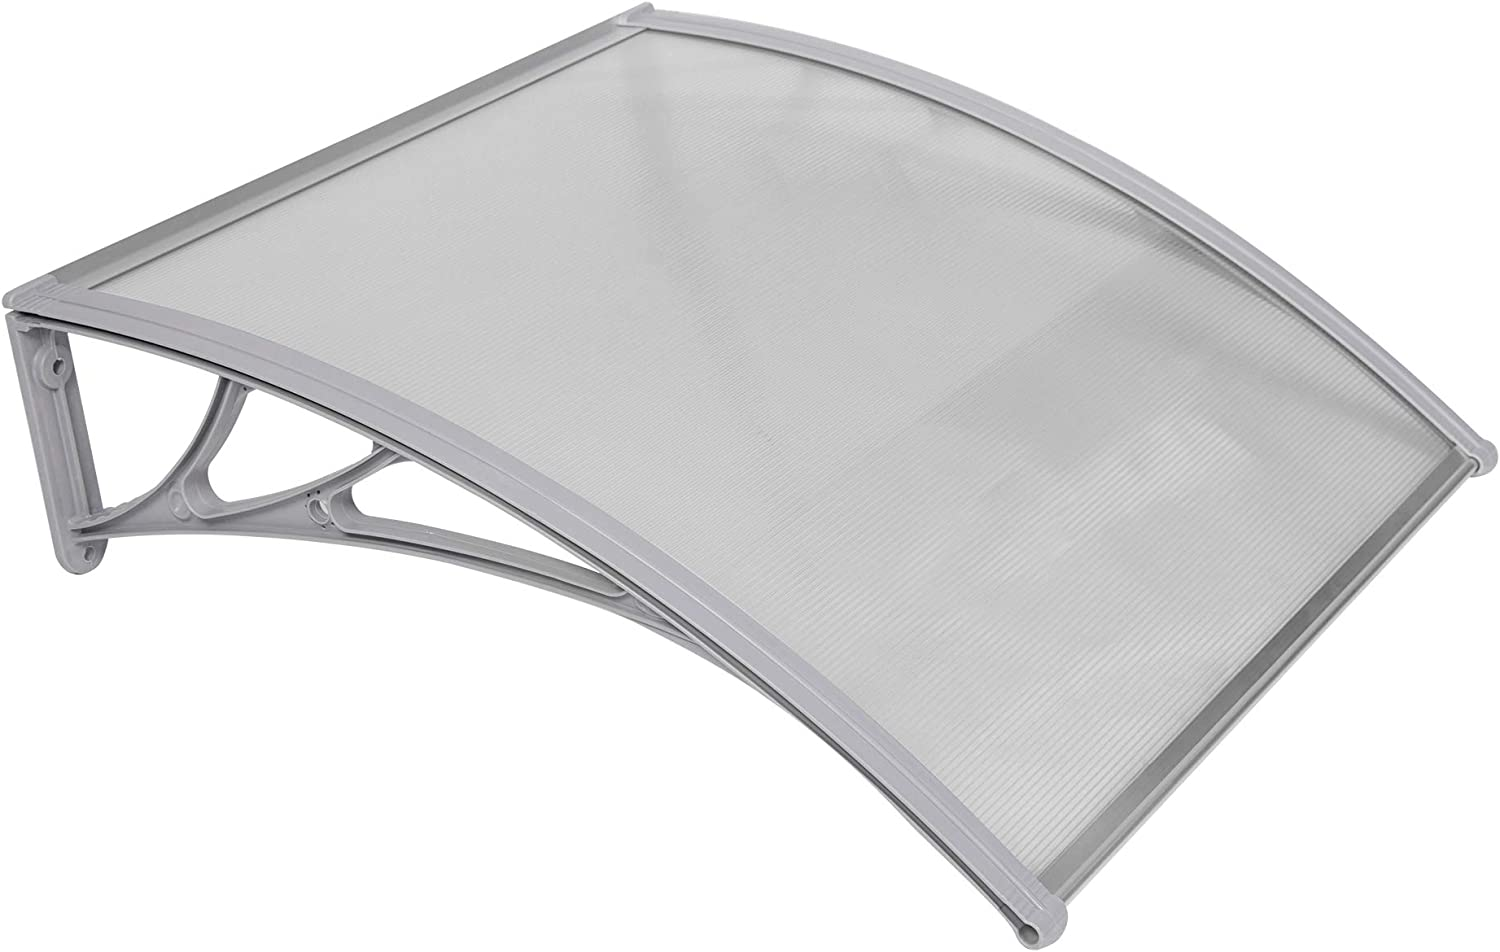 Vilobos Window Door Awning Cover UV Rain Snow Protection One-Piece Polycarbonate Hollow Sheet 40 x 40 Gray